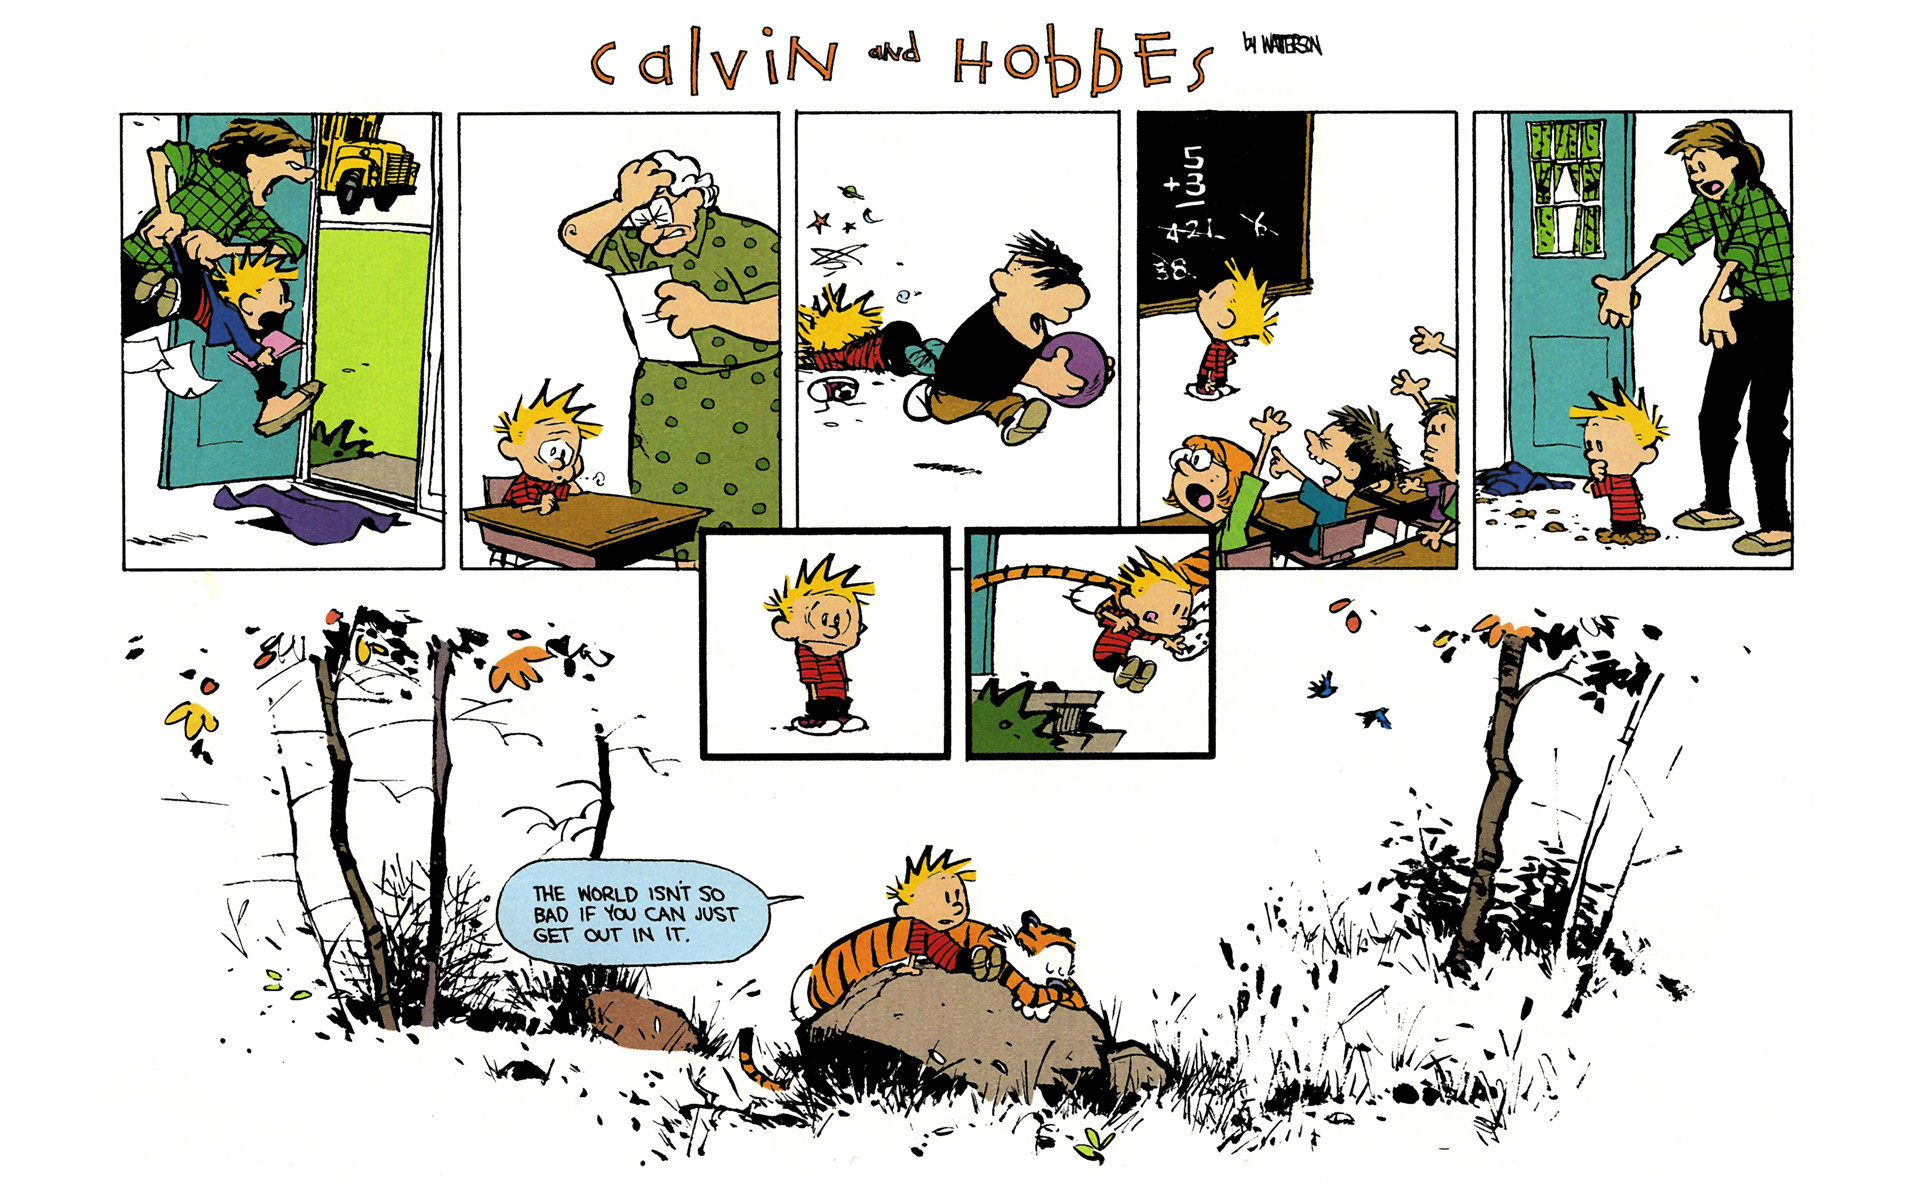 1920x1200 Image - Calvin-and-hobbes-HD-Wallpapers.jpg | The Calvin and Hobbes Wiki |  FANDOM powered by Wikia